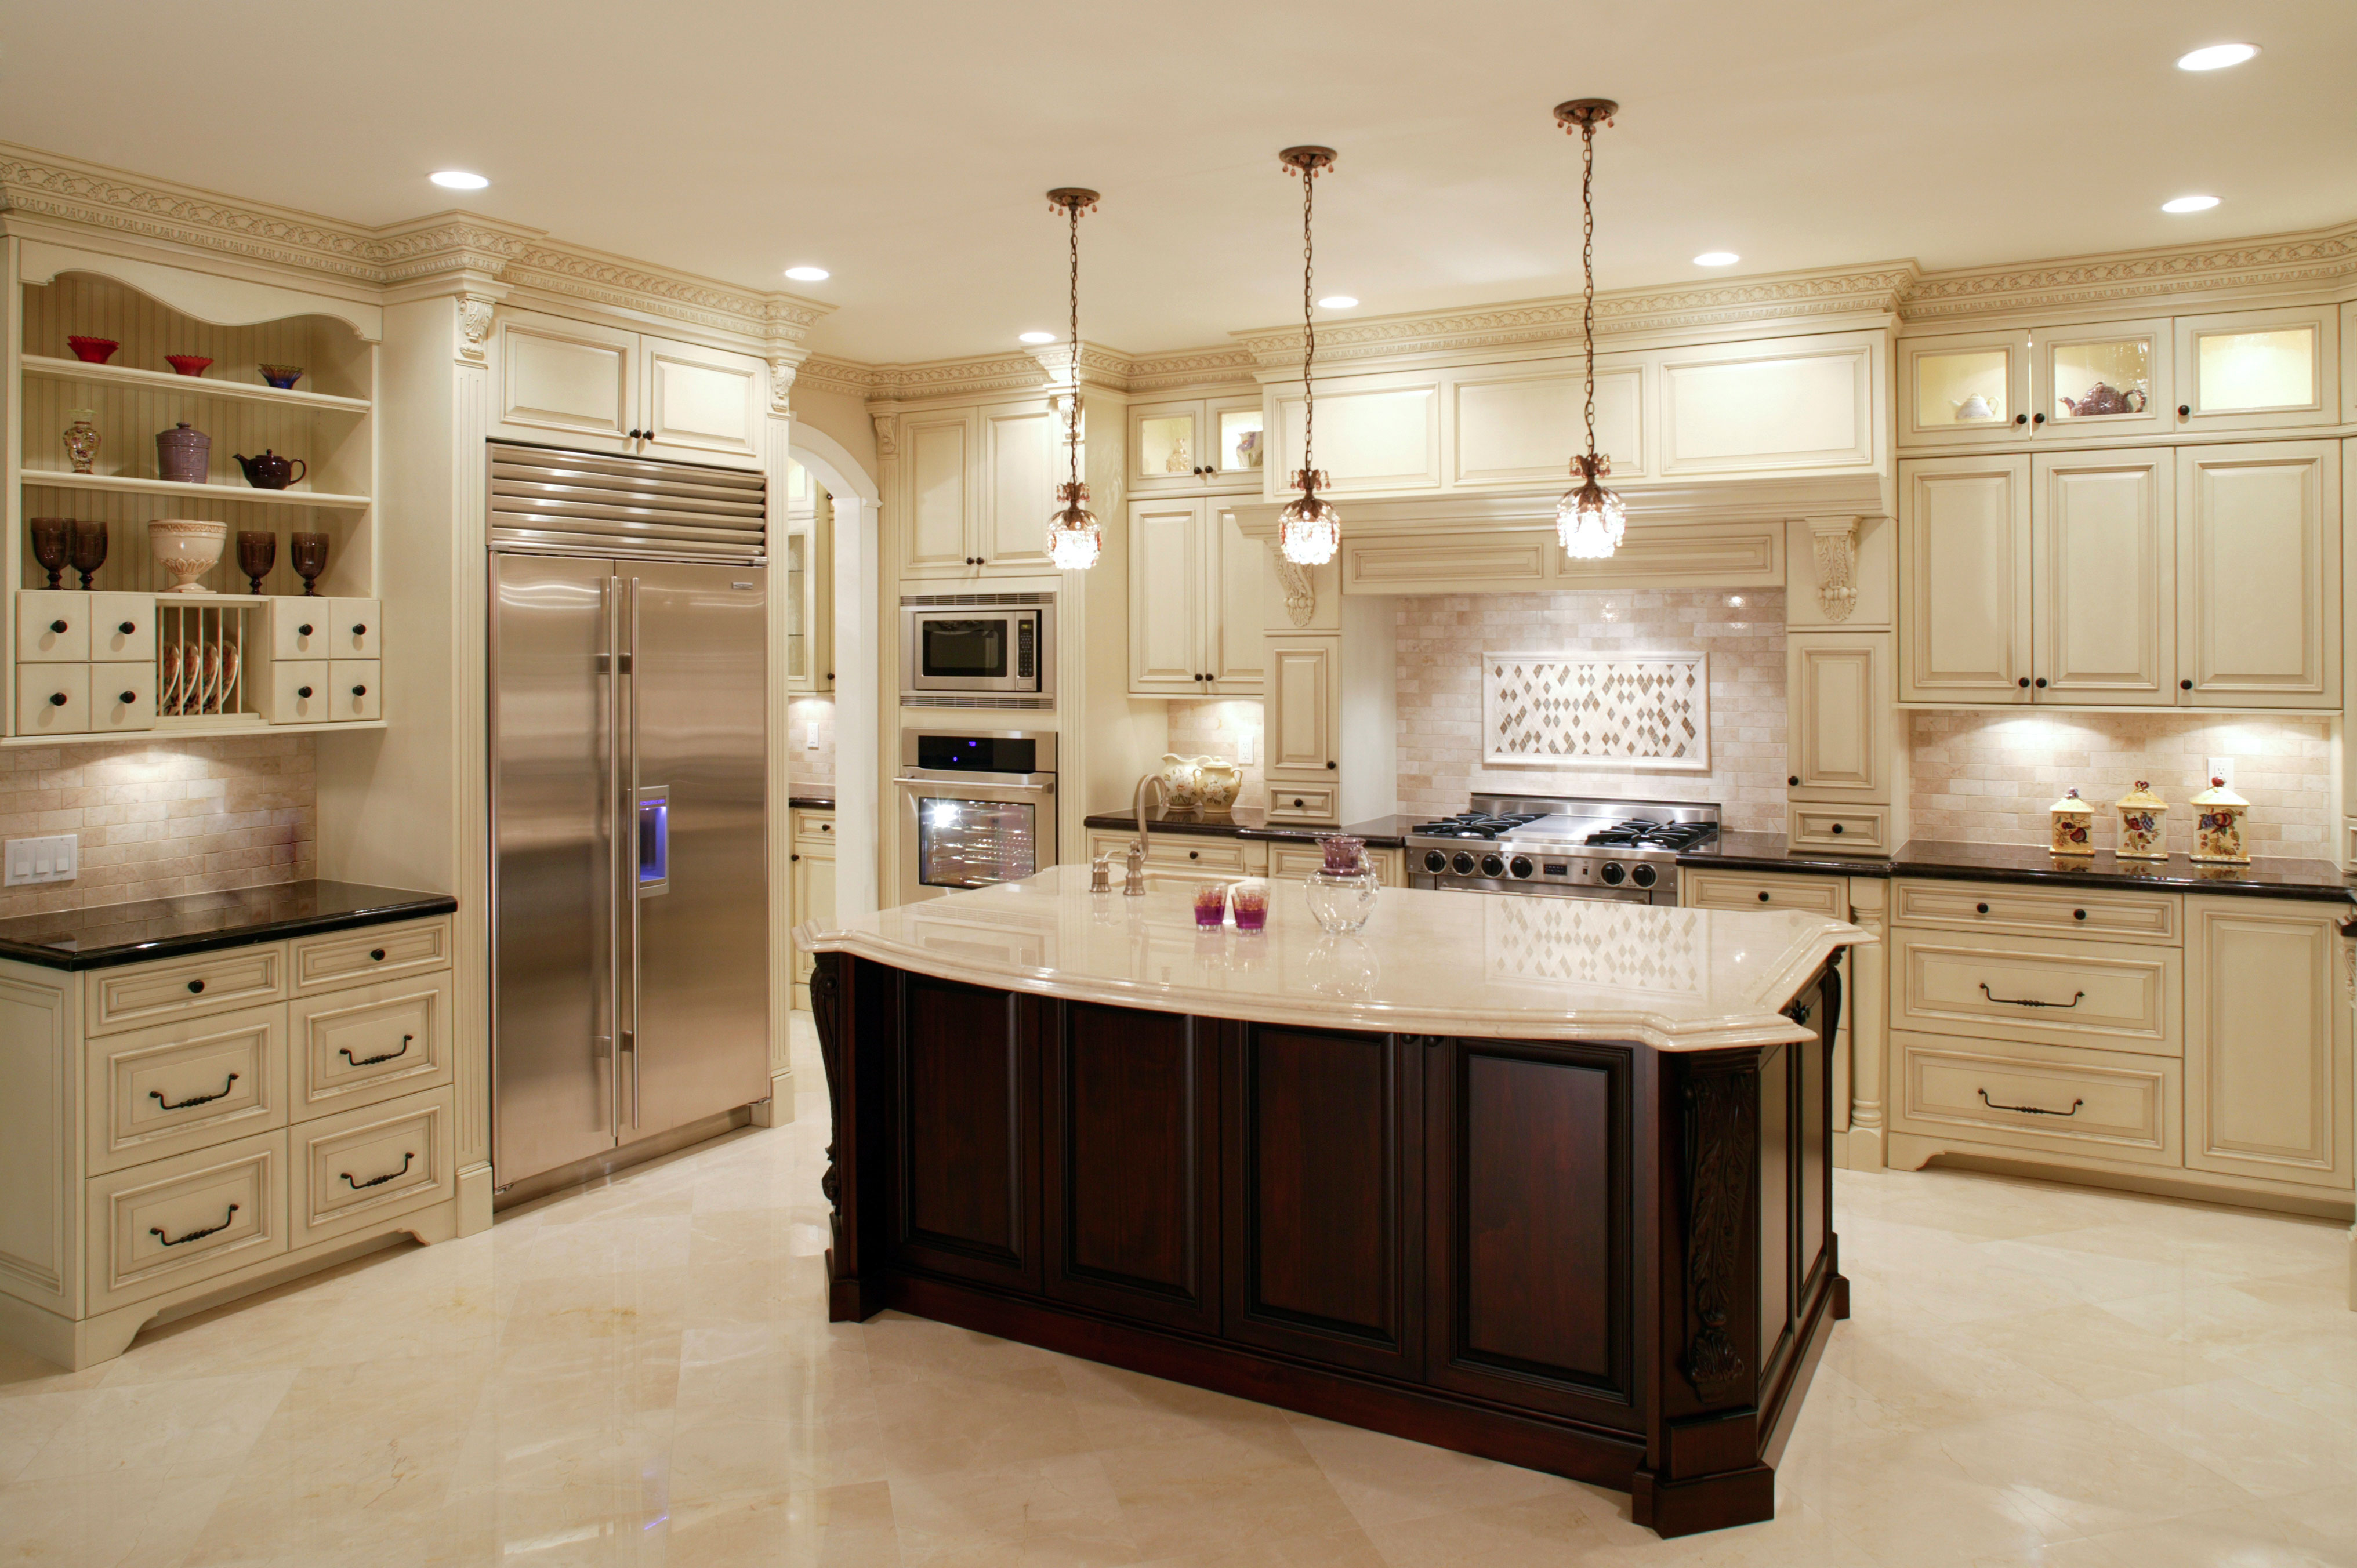 Kitchen Design - A beautiful white traditional kitchen with an island